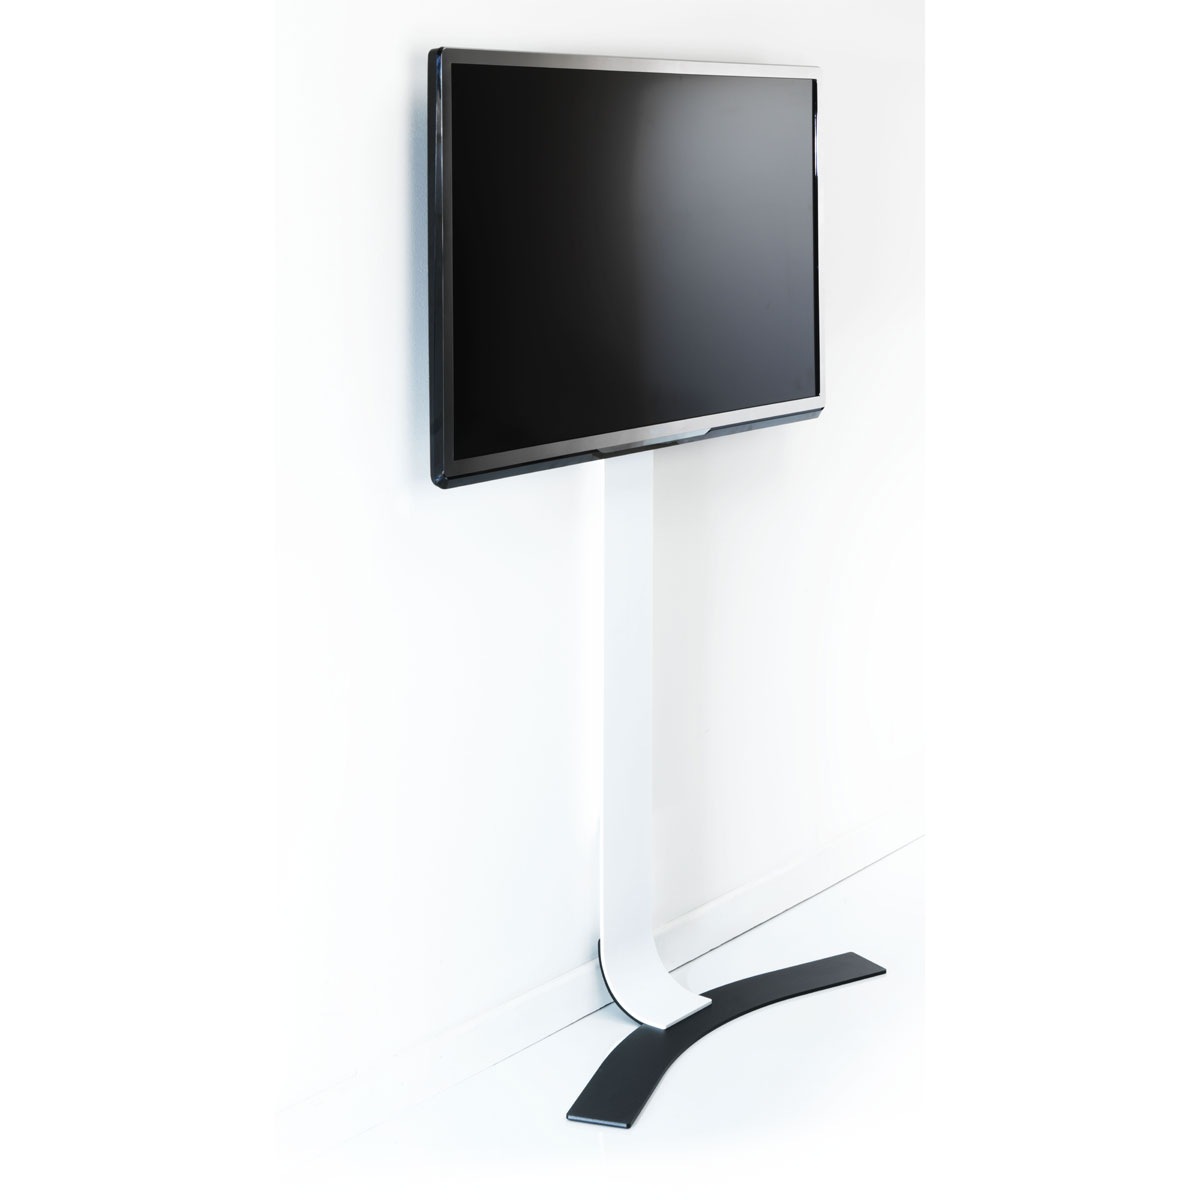 Erard Standit 600 Support Mural Tv Erard Group Sur Ldlc Com # Tablette Sous Tv Murale